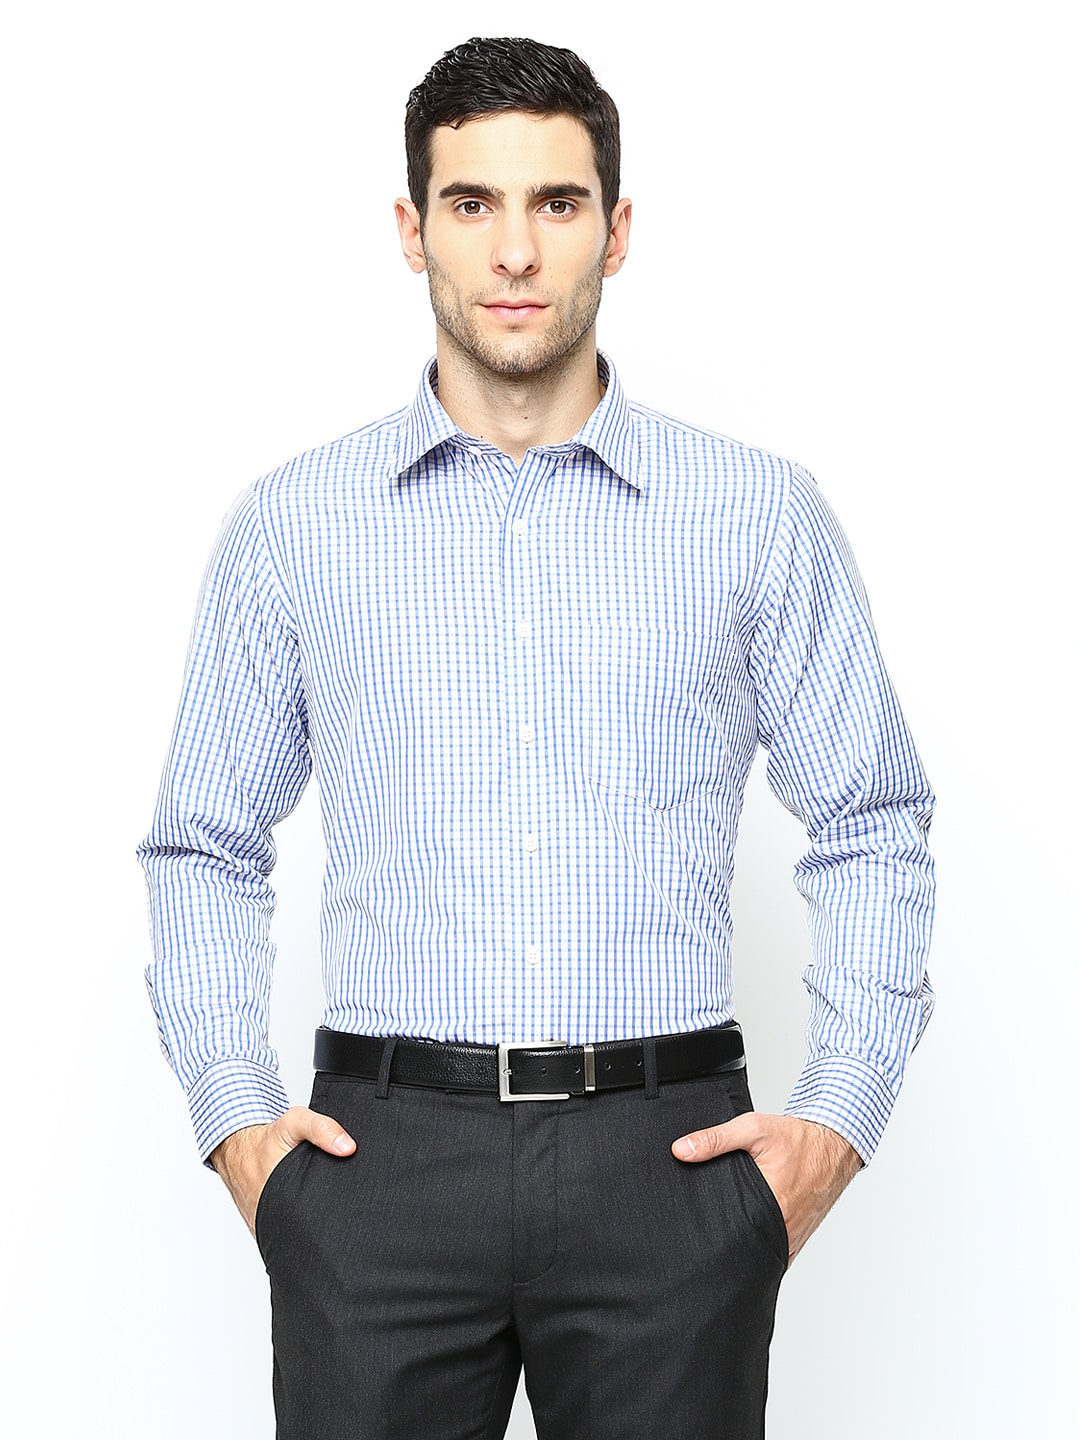 Oxemberg Oxemberg Men White & Blue Checked Slim Fit Formal Shirt (Multicolor)